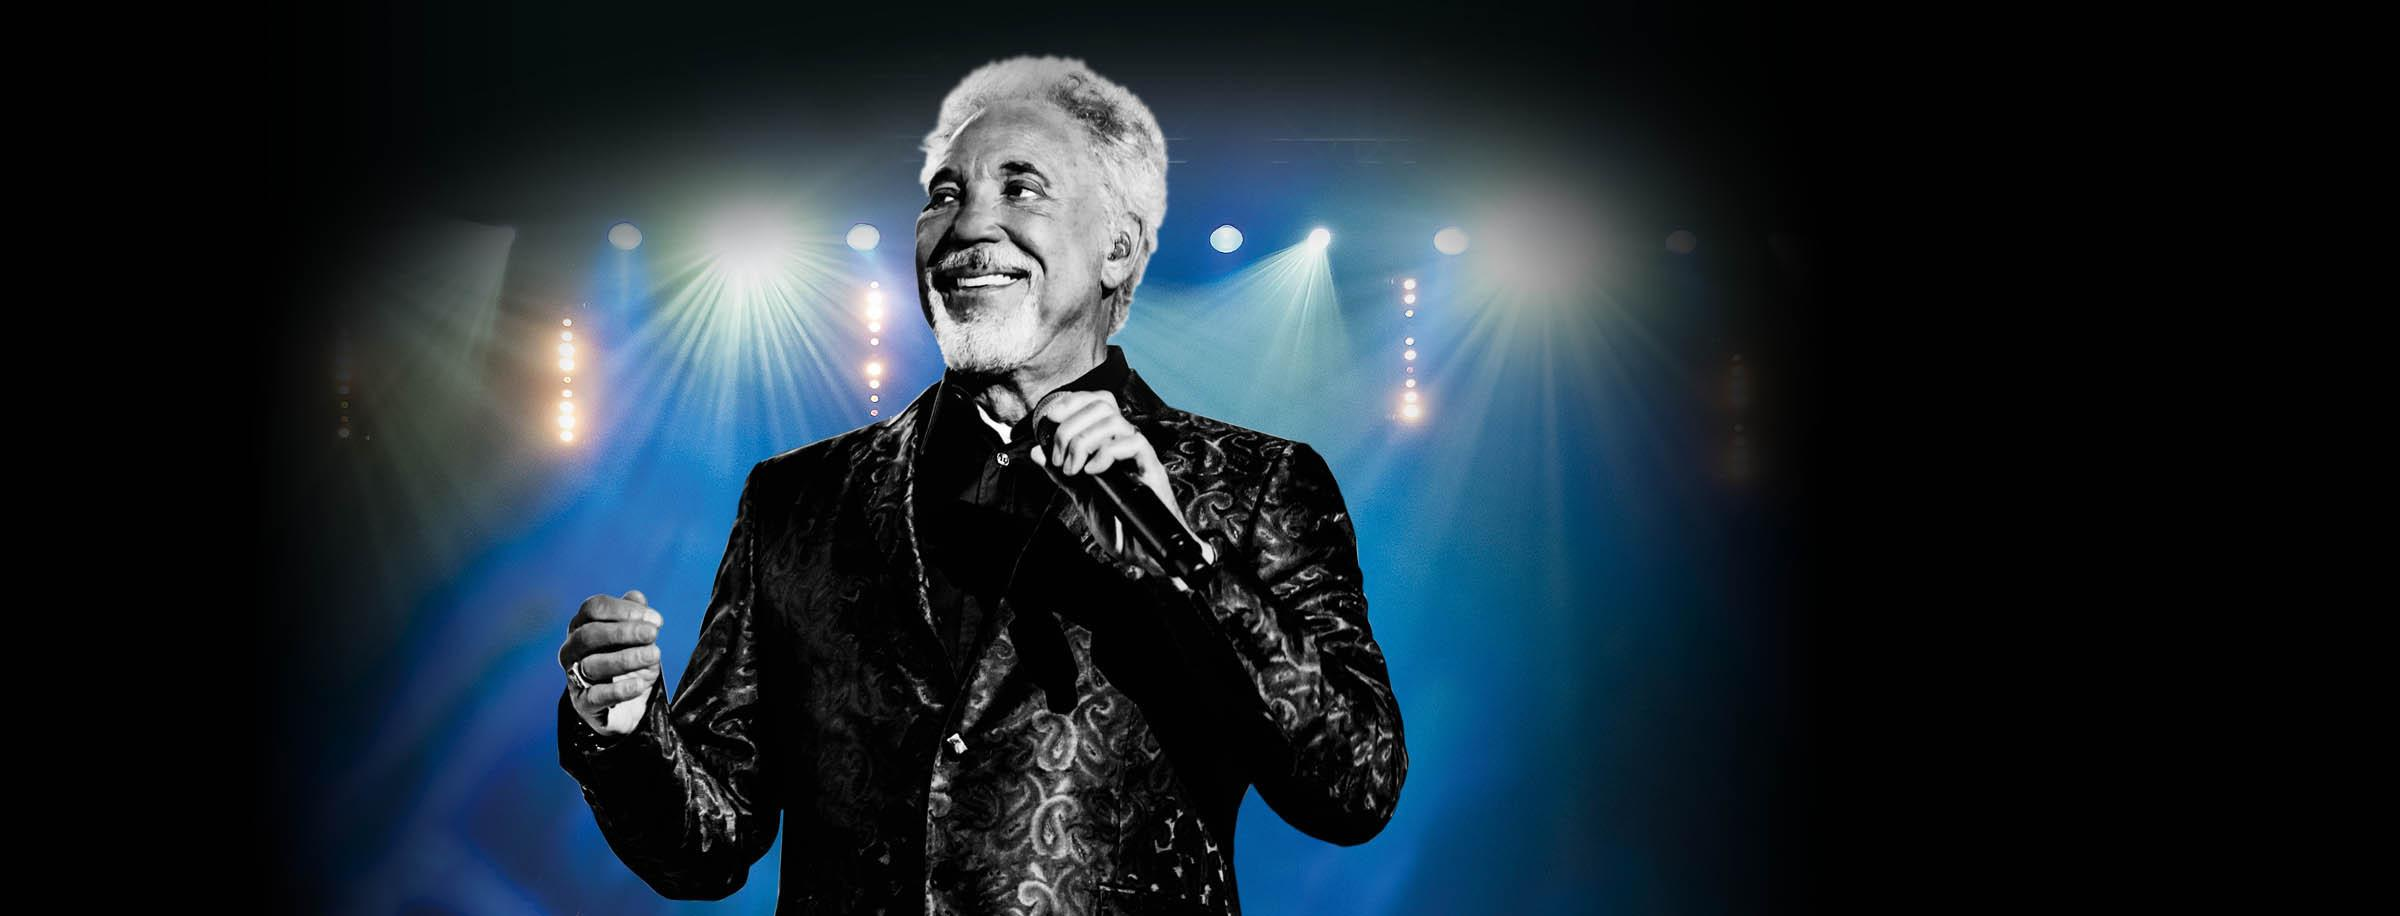 Tom Jones Live @ VeszprémFest, 14 July